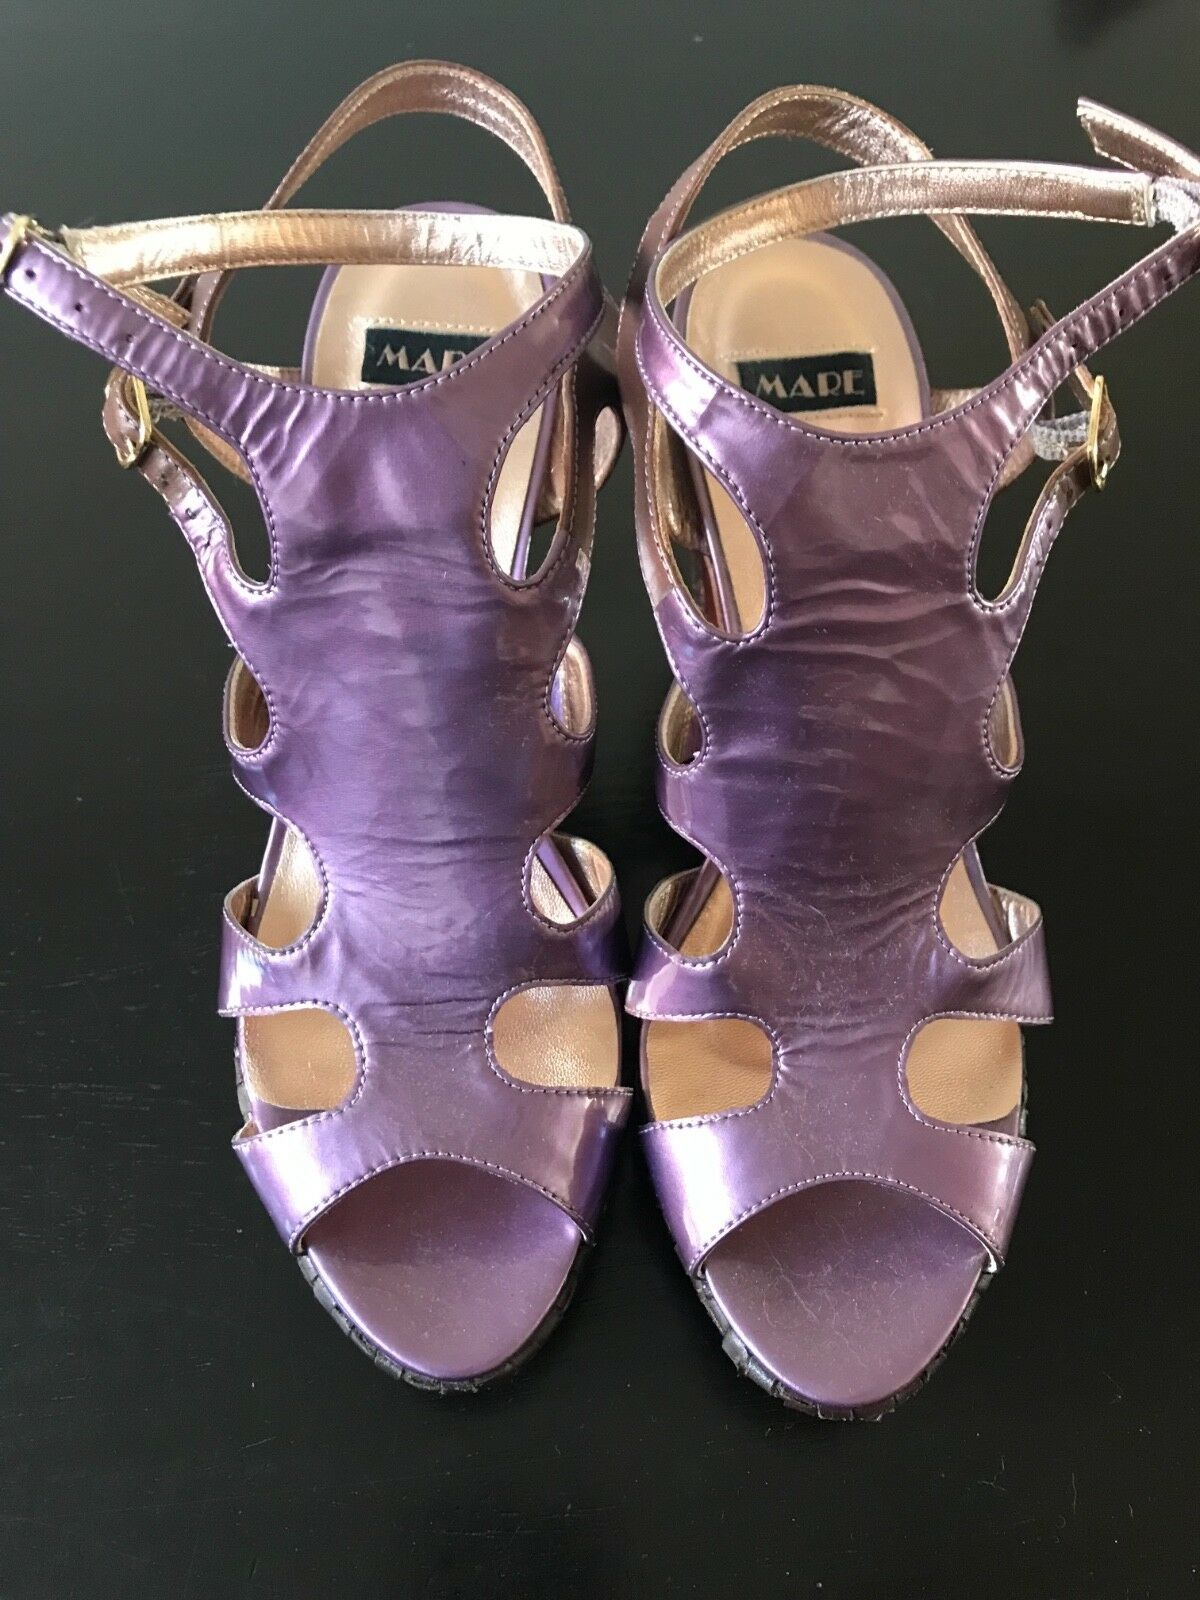 Mare brand leather high heels sandals with replacement heel. Made in .